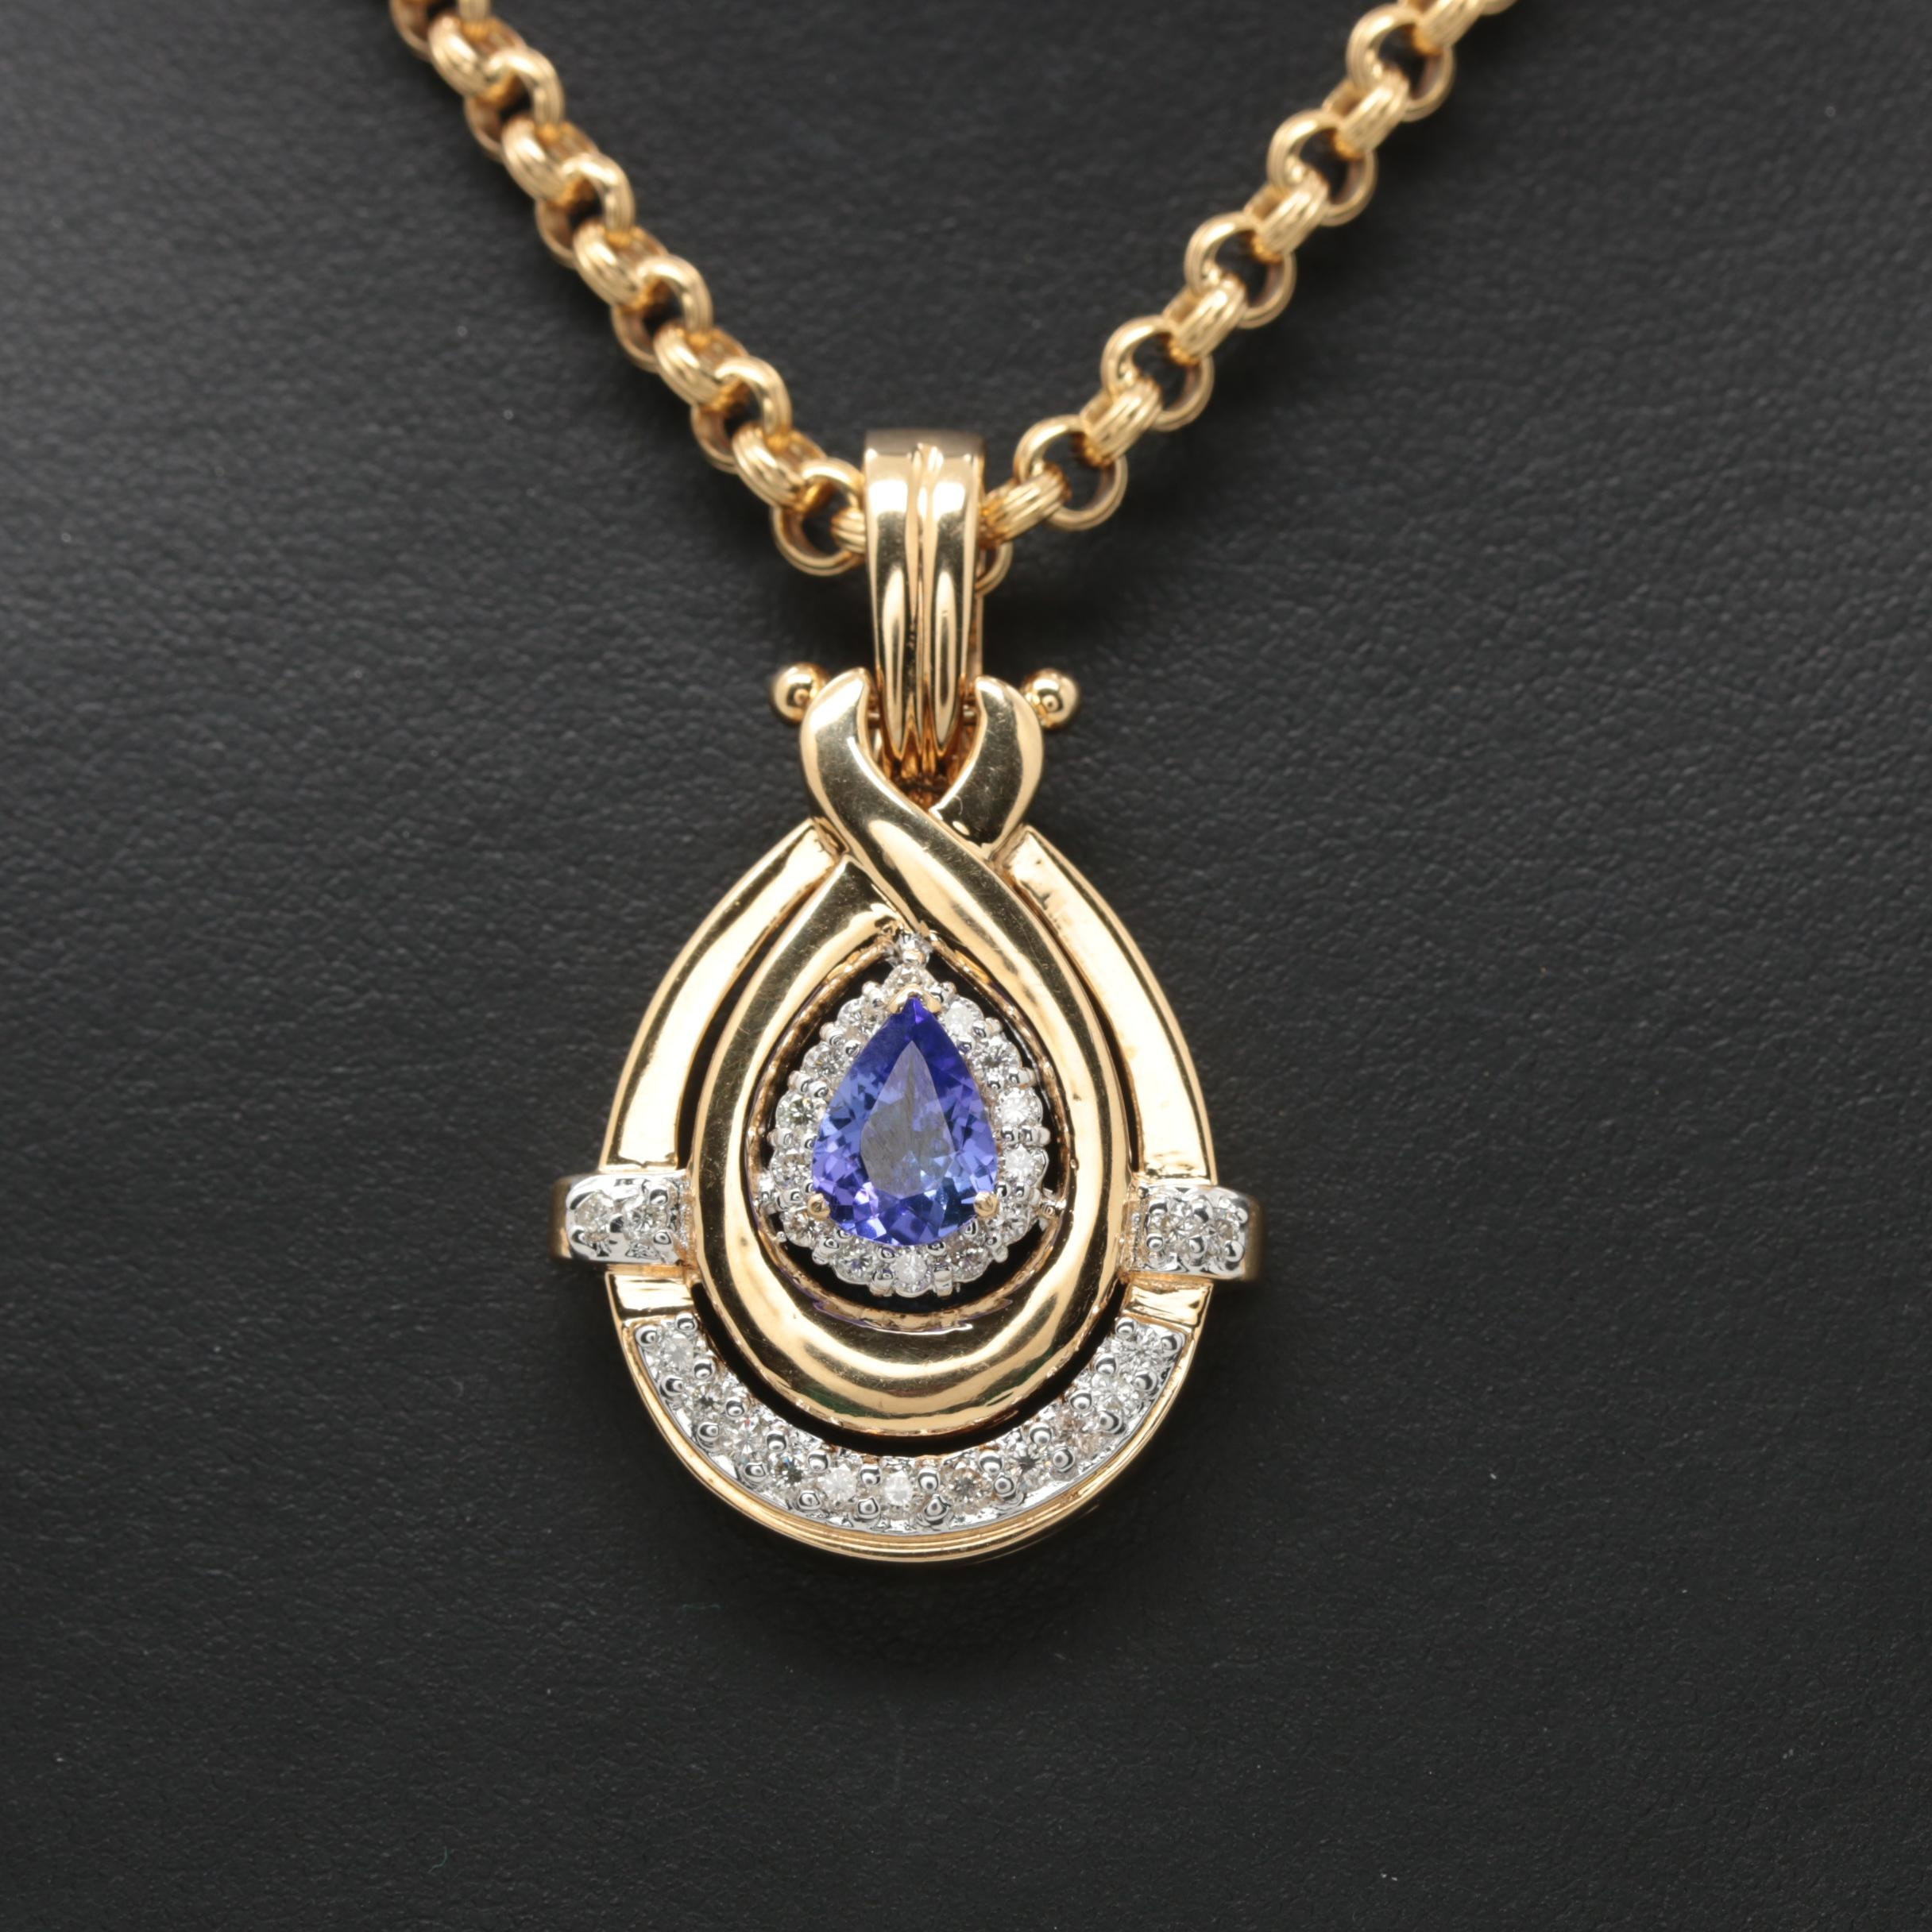 14K Yellow Gold Tanzanite and Diamond Enhancer Pendant Necklace